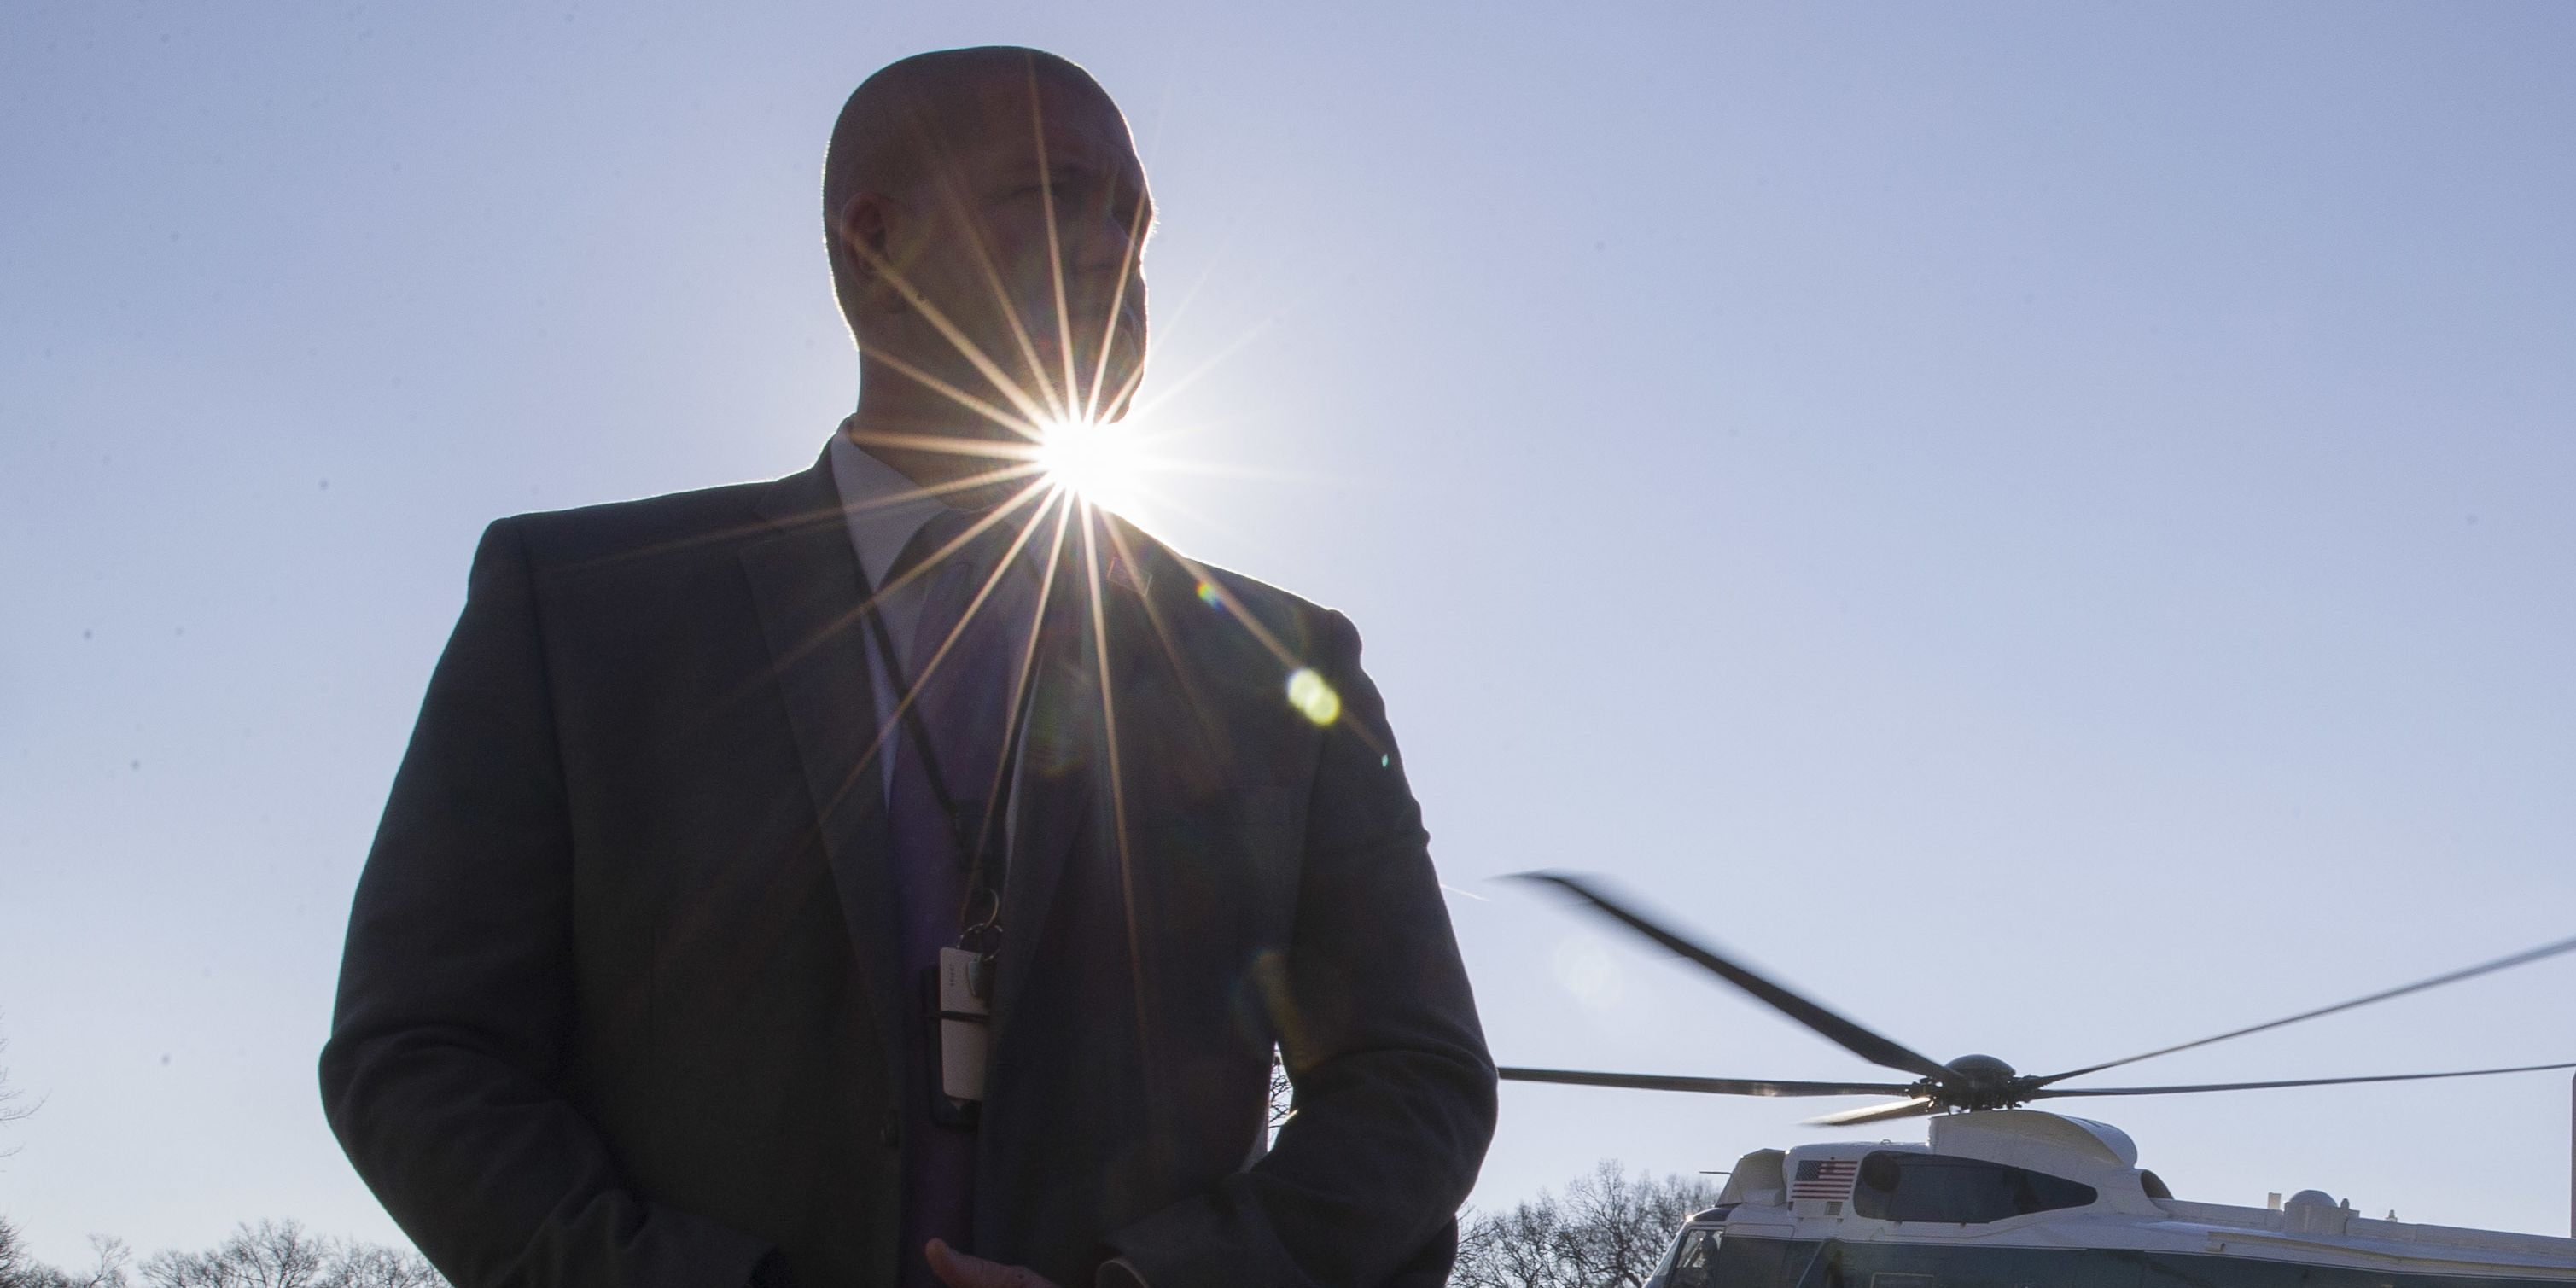 Secret Service members use special coins to commemorate gov't shutdown, no pay